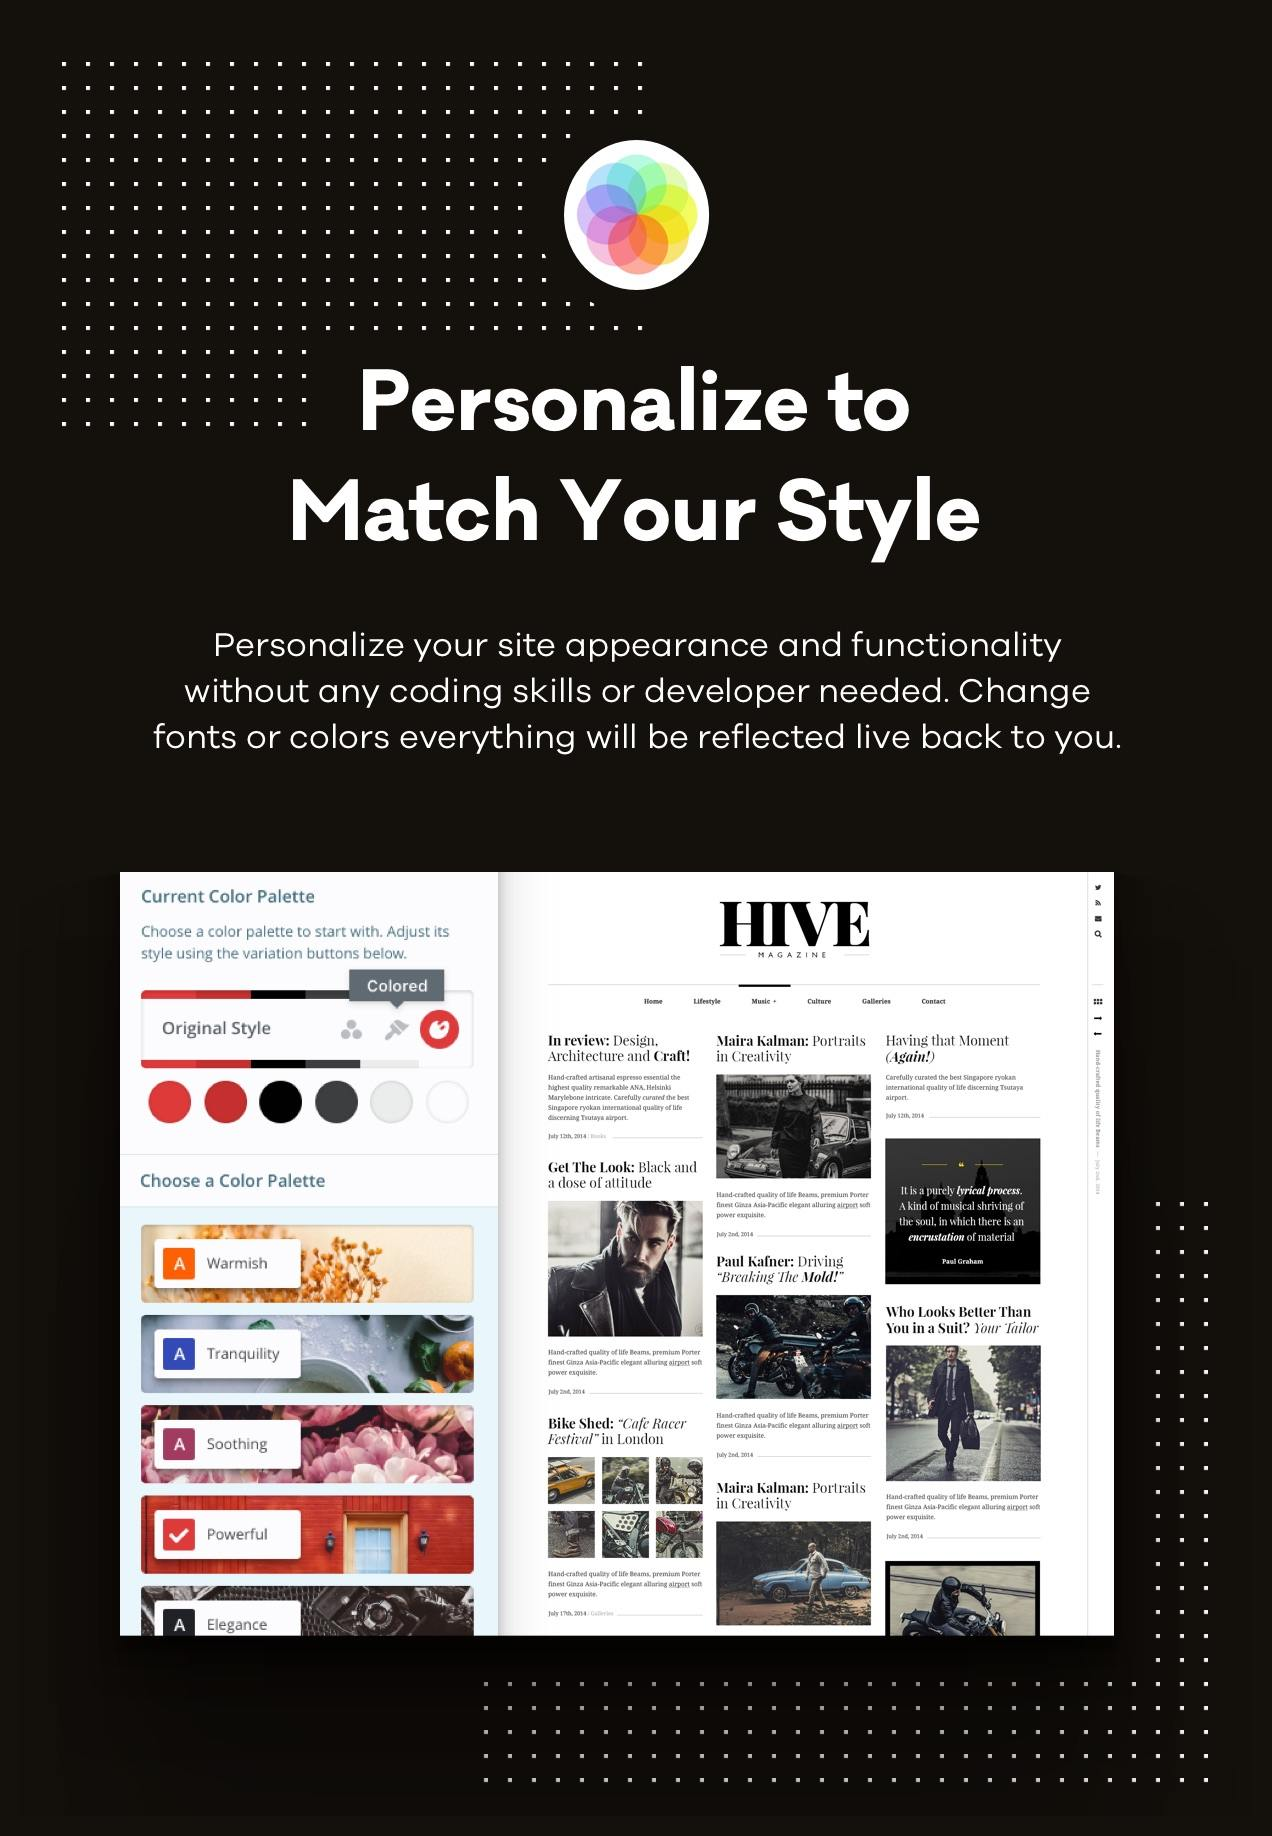 hive-personalize.jpg